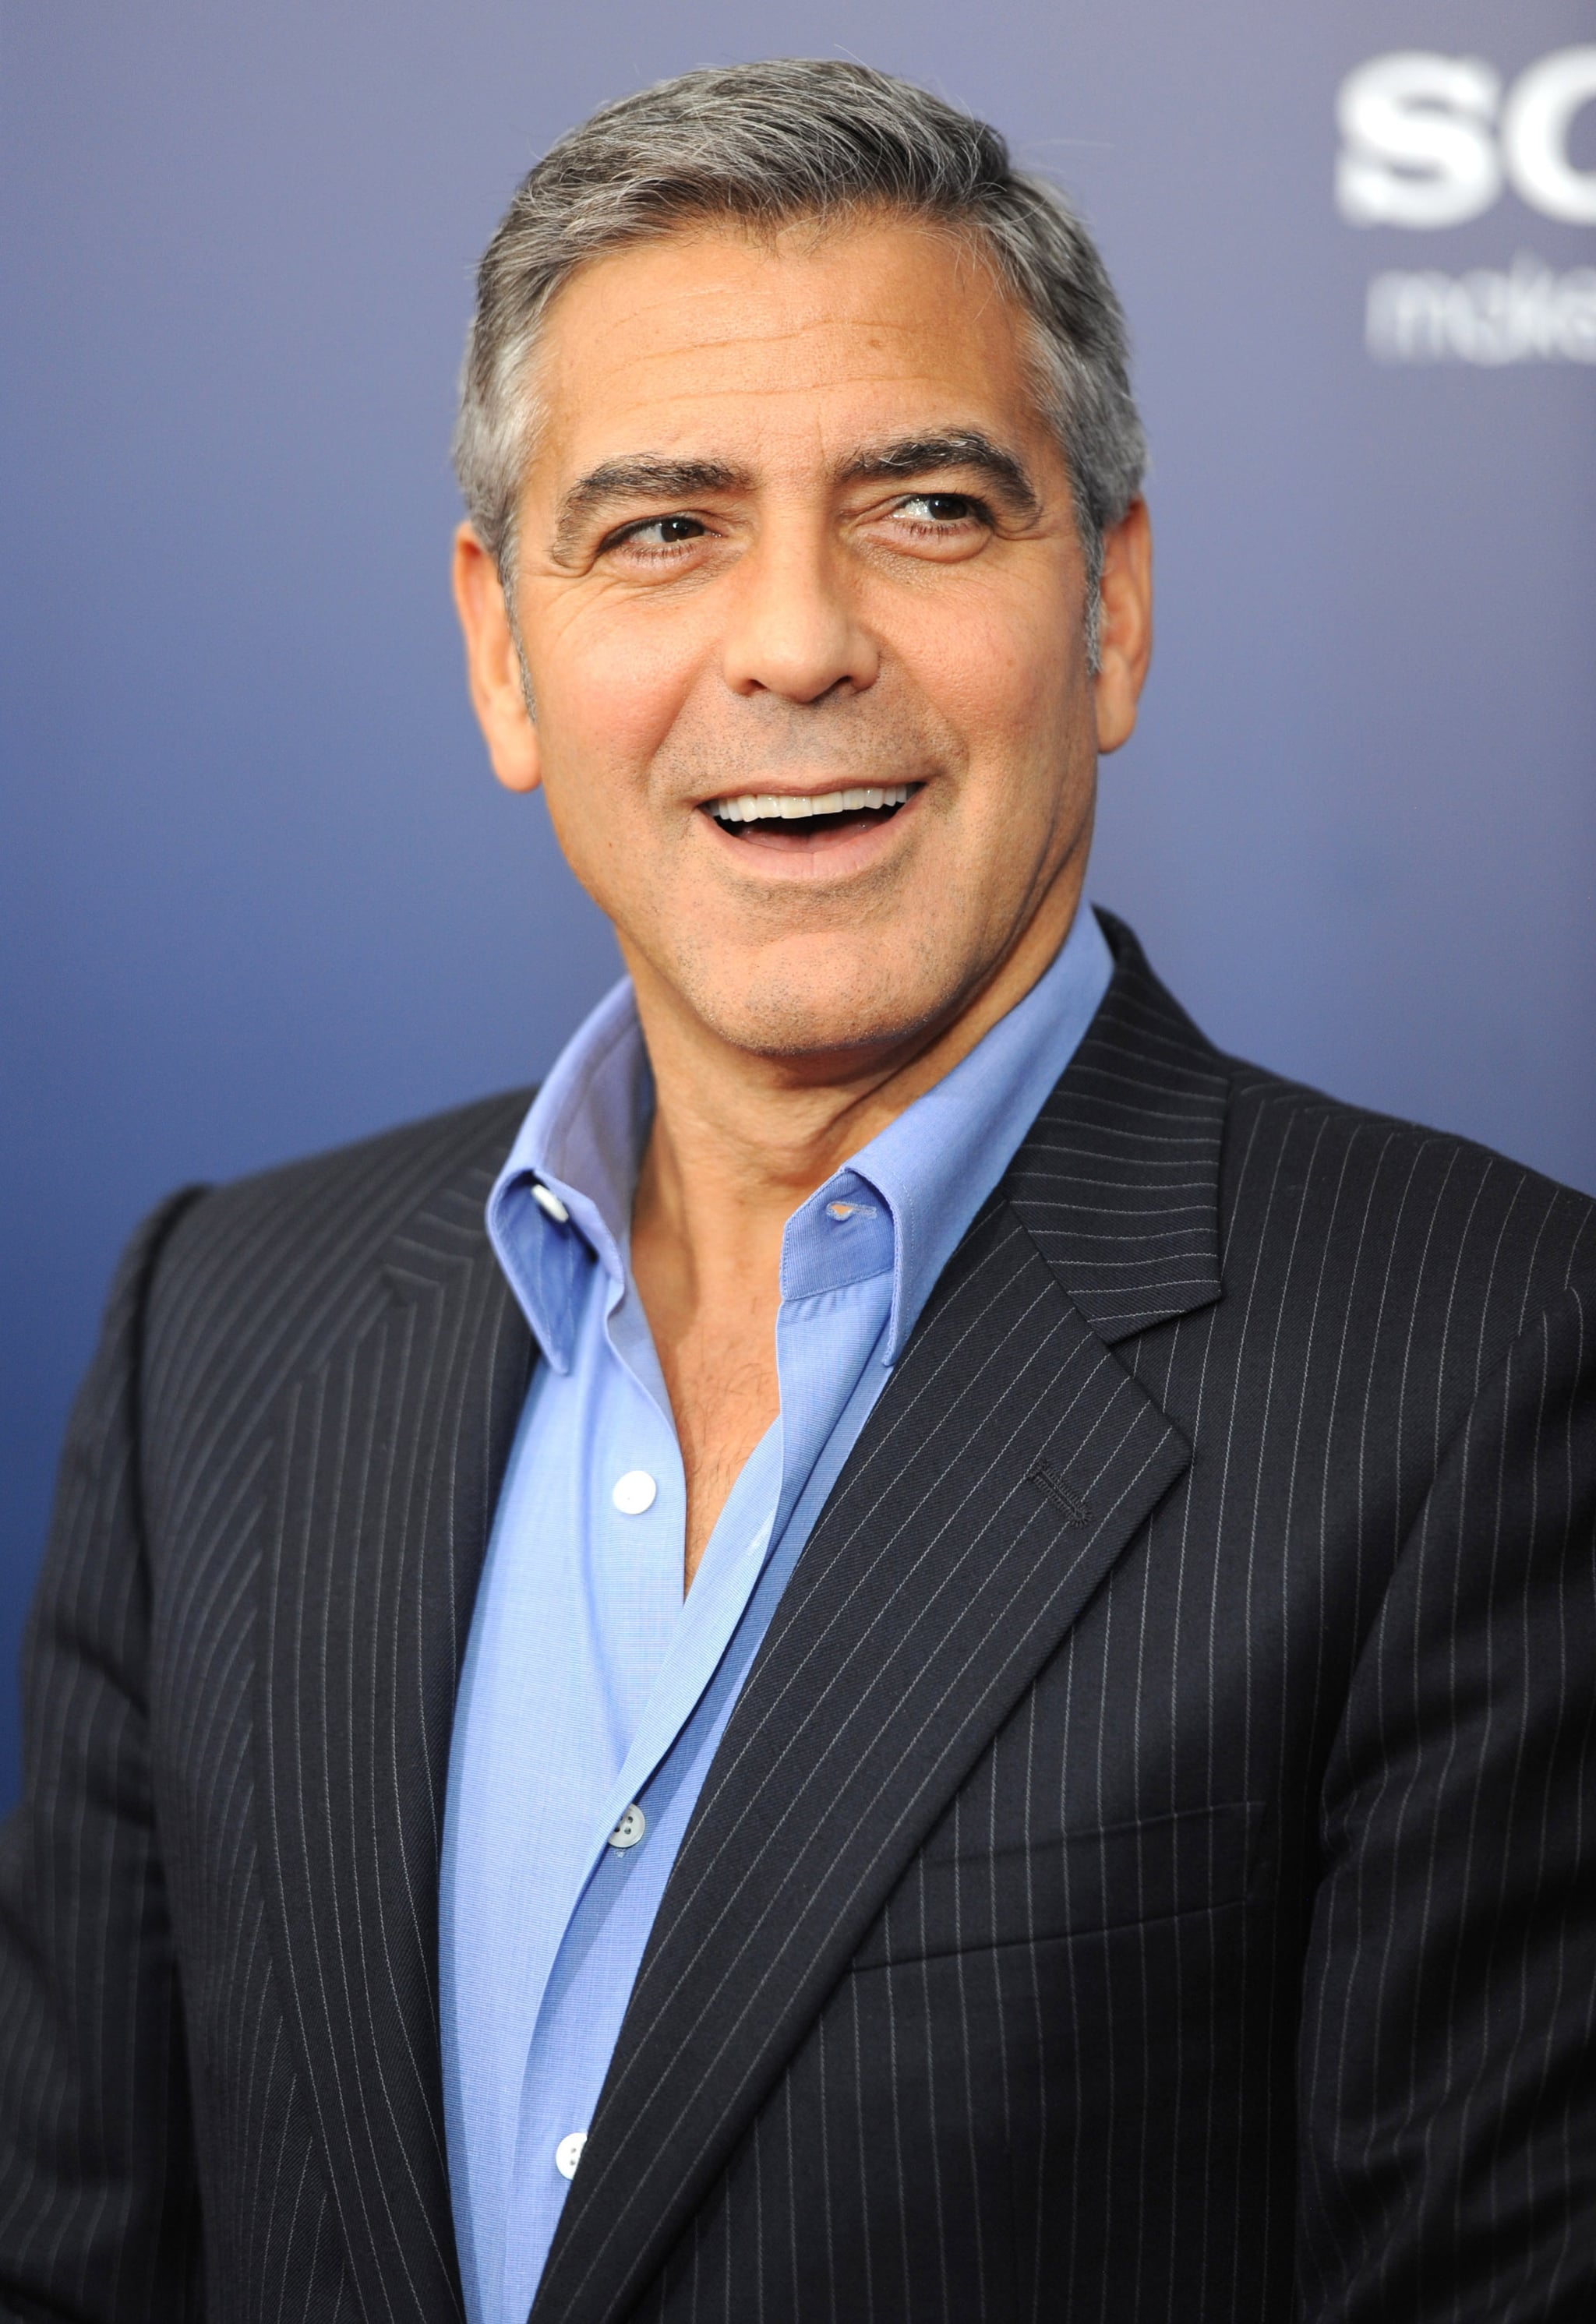 George Clooney had a lot to smile about at The Ides of March.